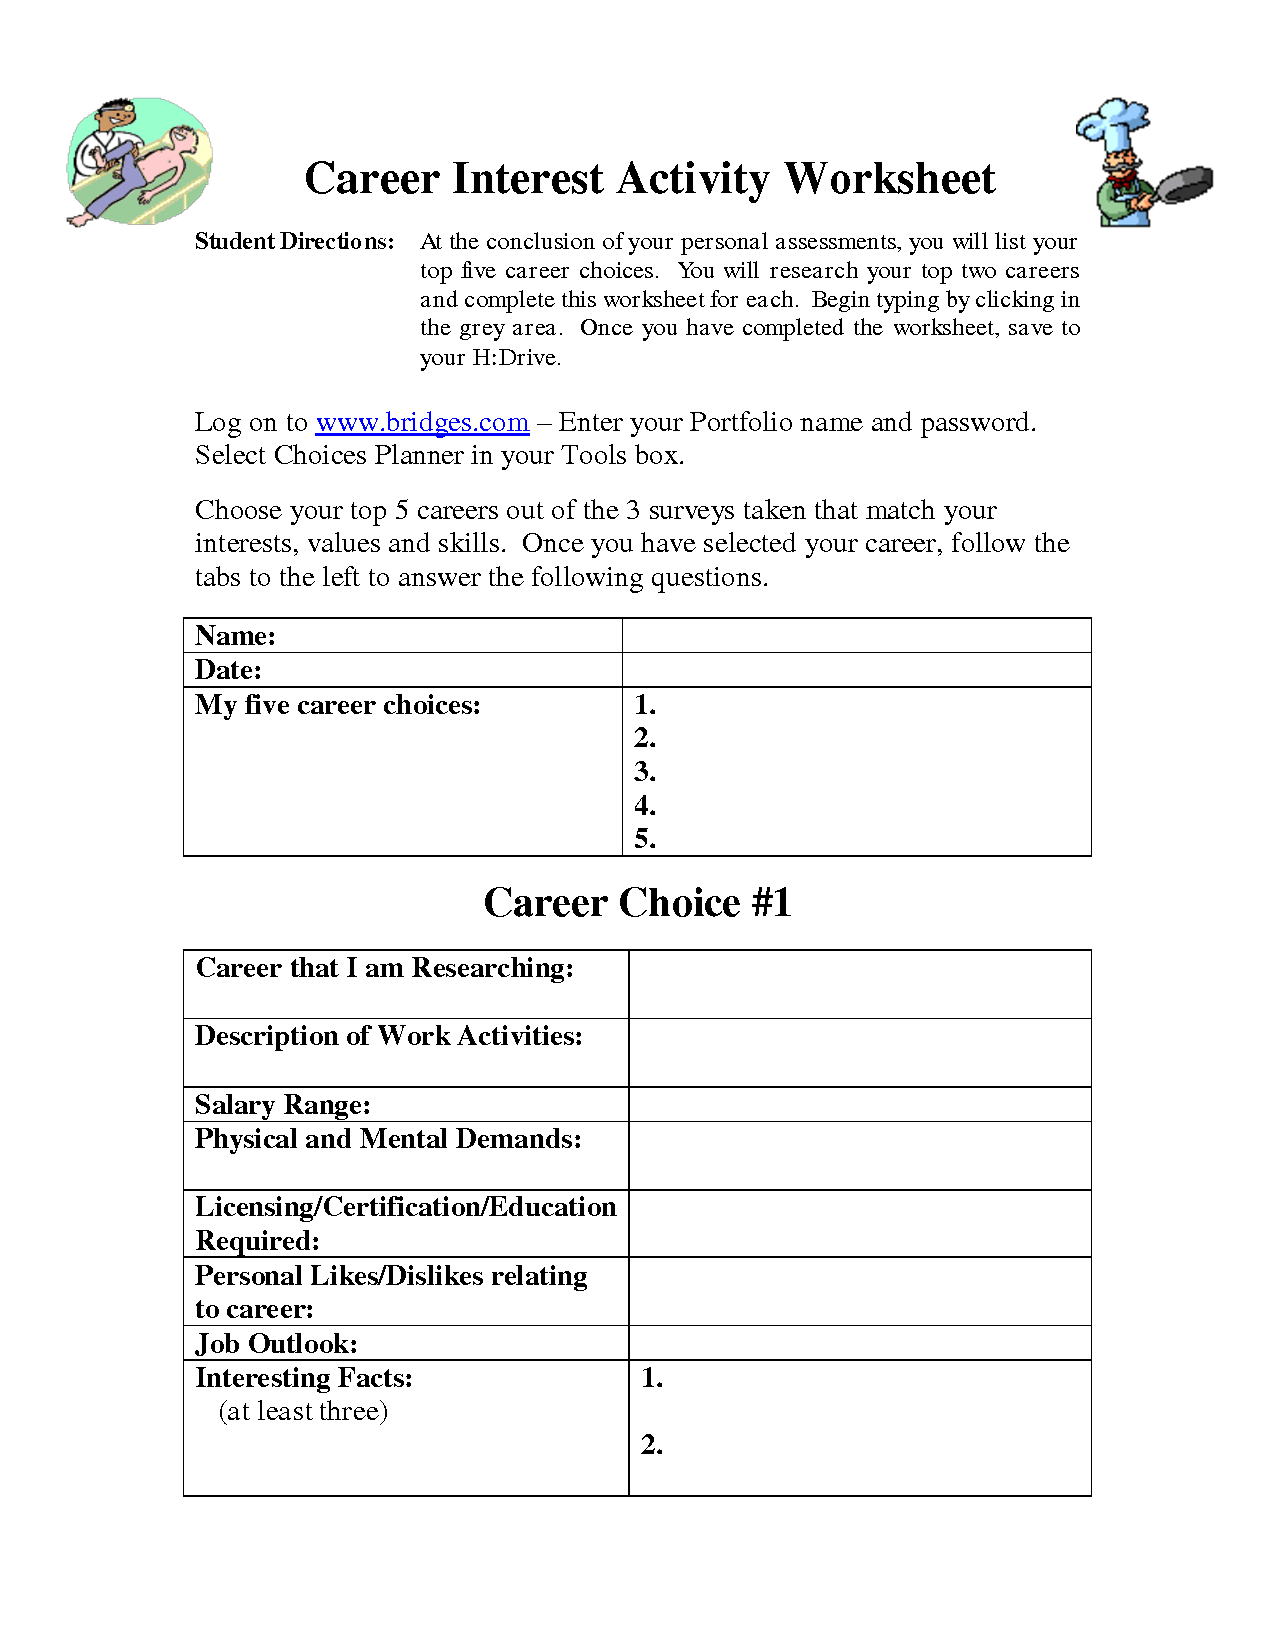 Witty Career Exploration Worksheets Printable